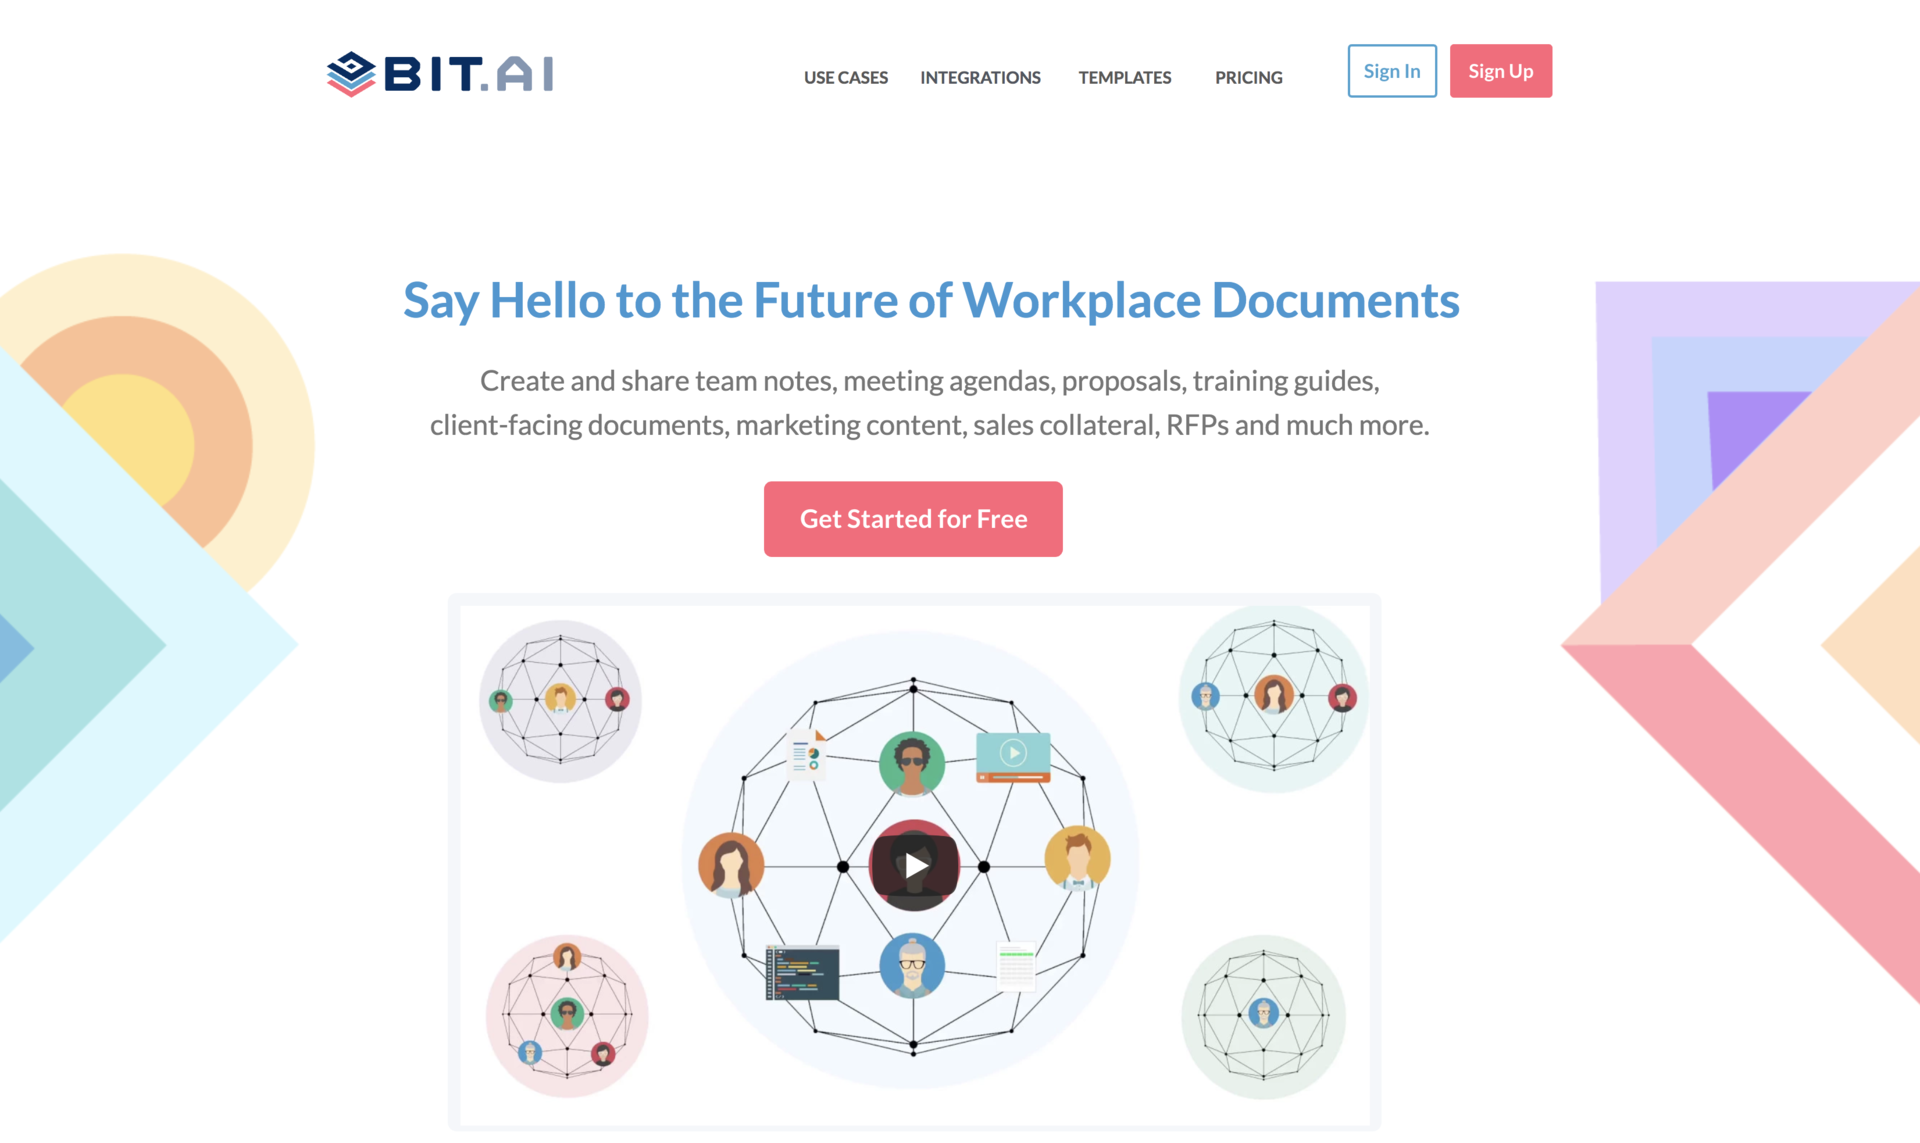 Bit.ai documentation tool for workplace collaboration